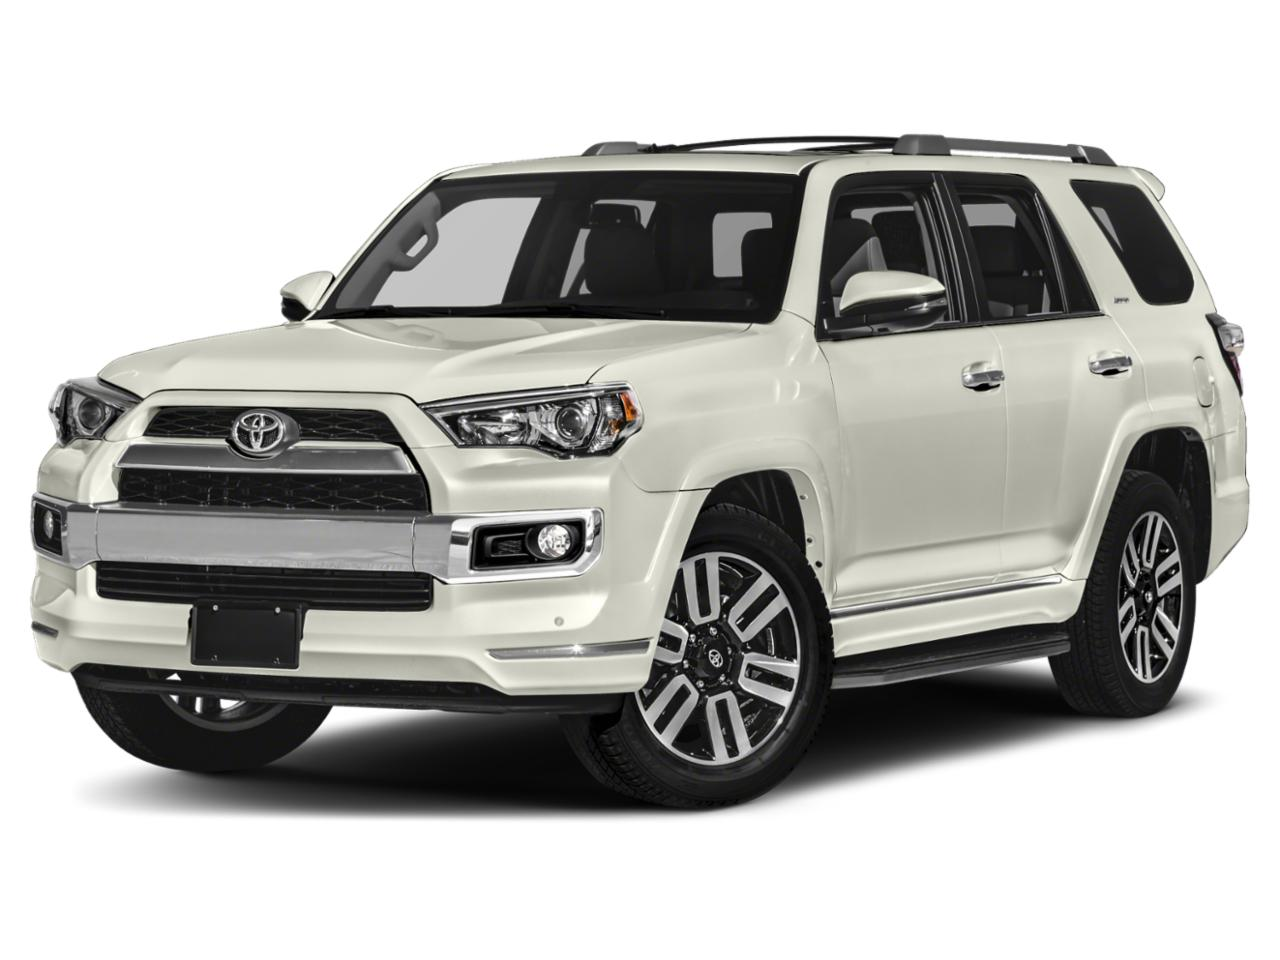 2019 Toyota 4Runner Vehicle Photo in Oshkosh, WI 54904